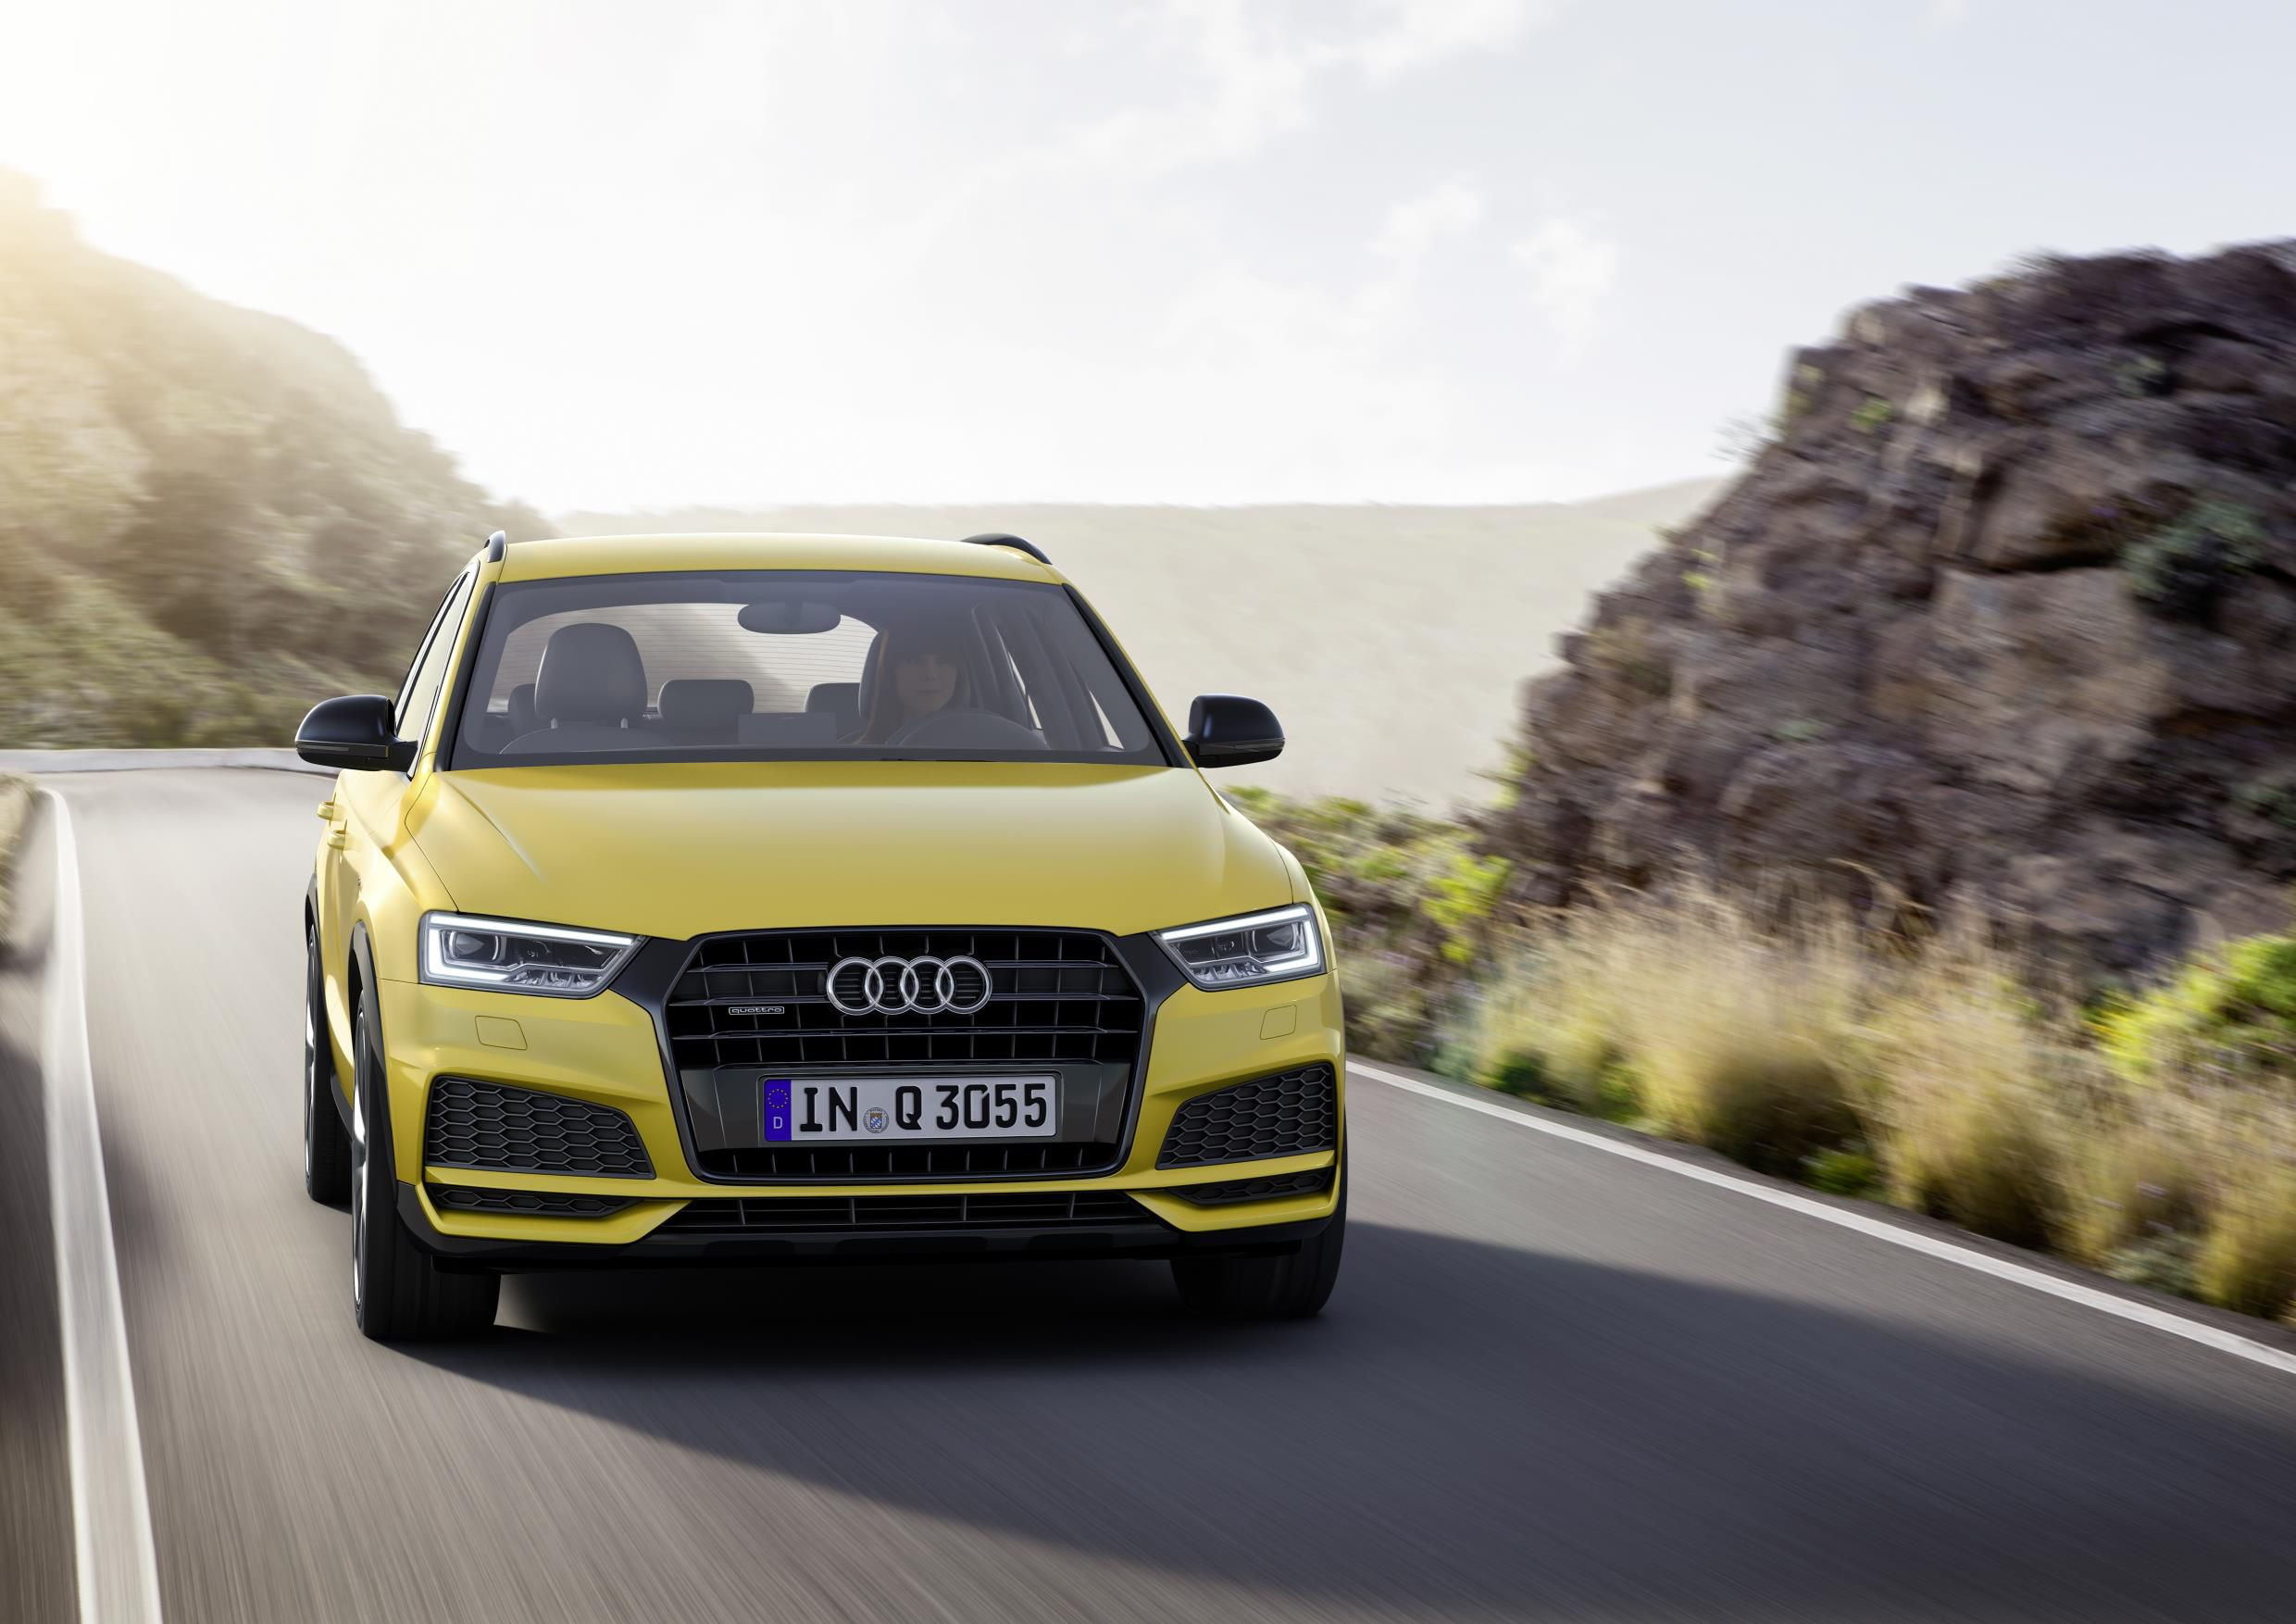 Yellow Audi Q3 driving towards you on amazing road